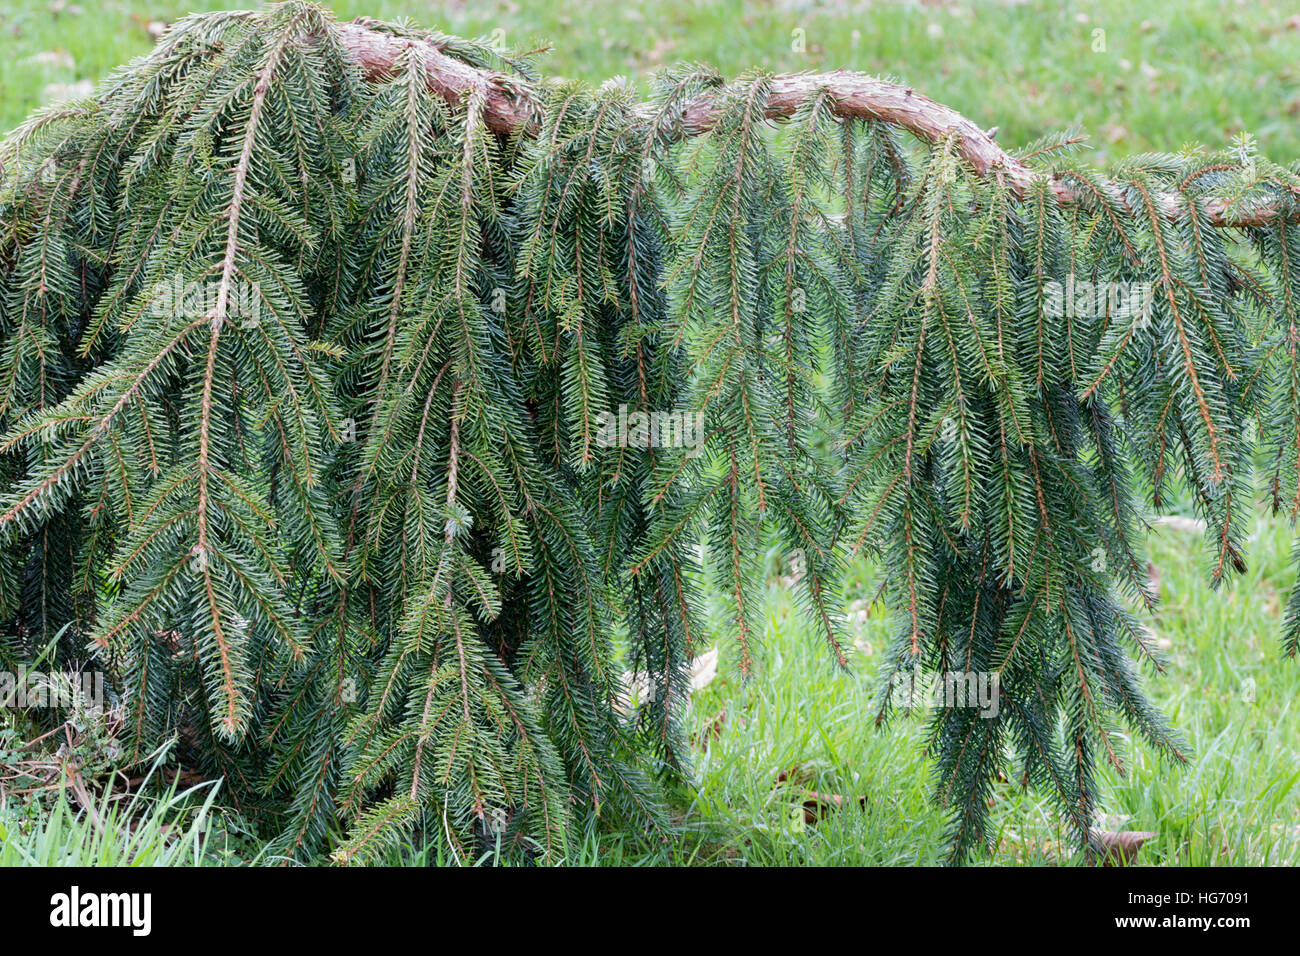 Hanging Branches Of The Evergreen Weeping Spruce Picea Omorika Pendula